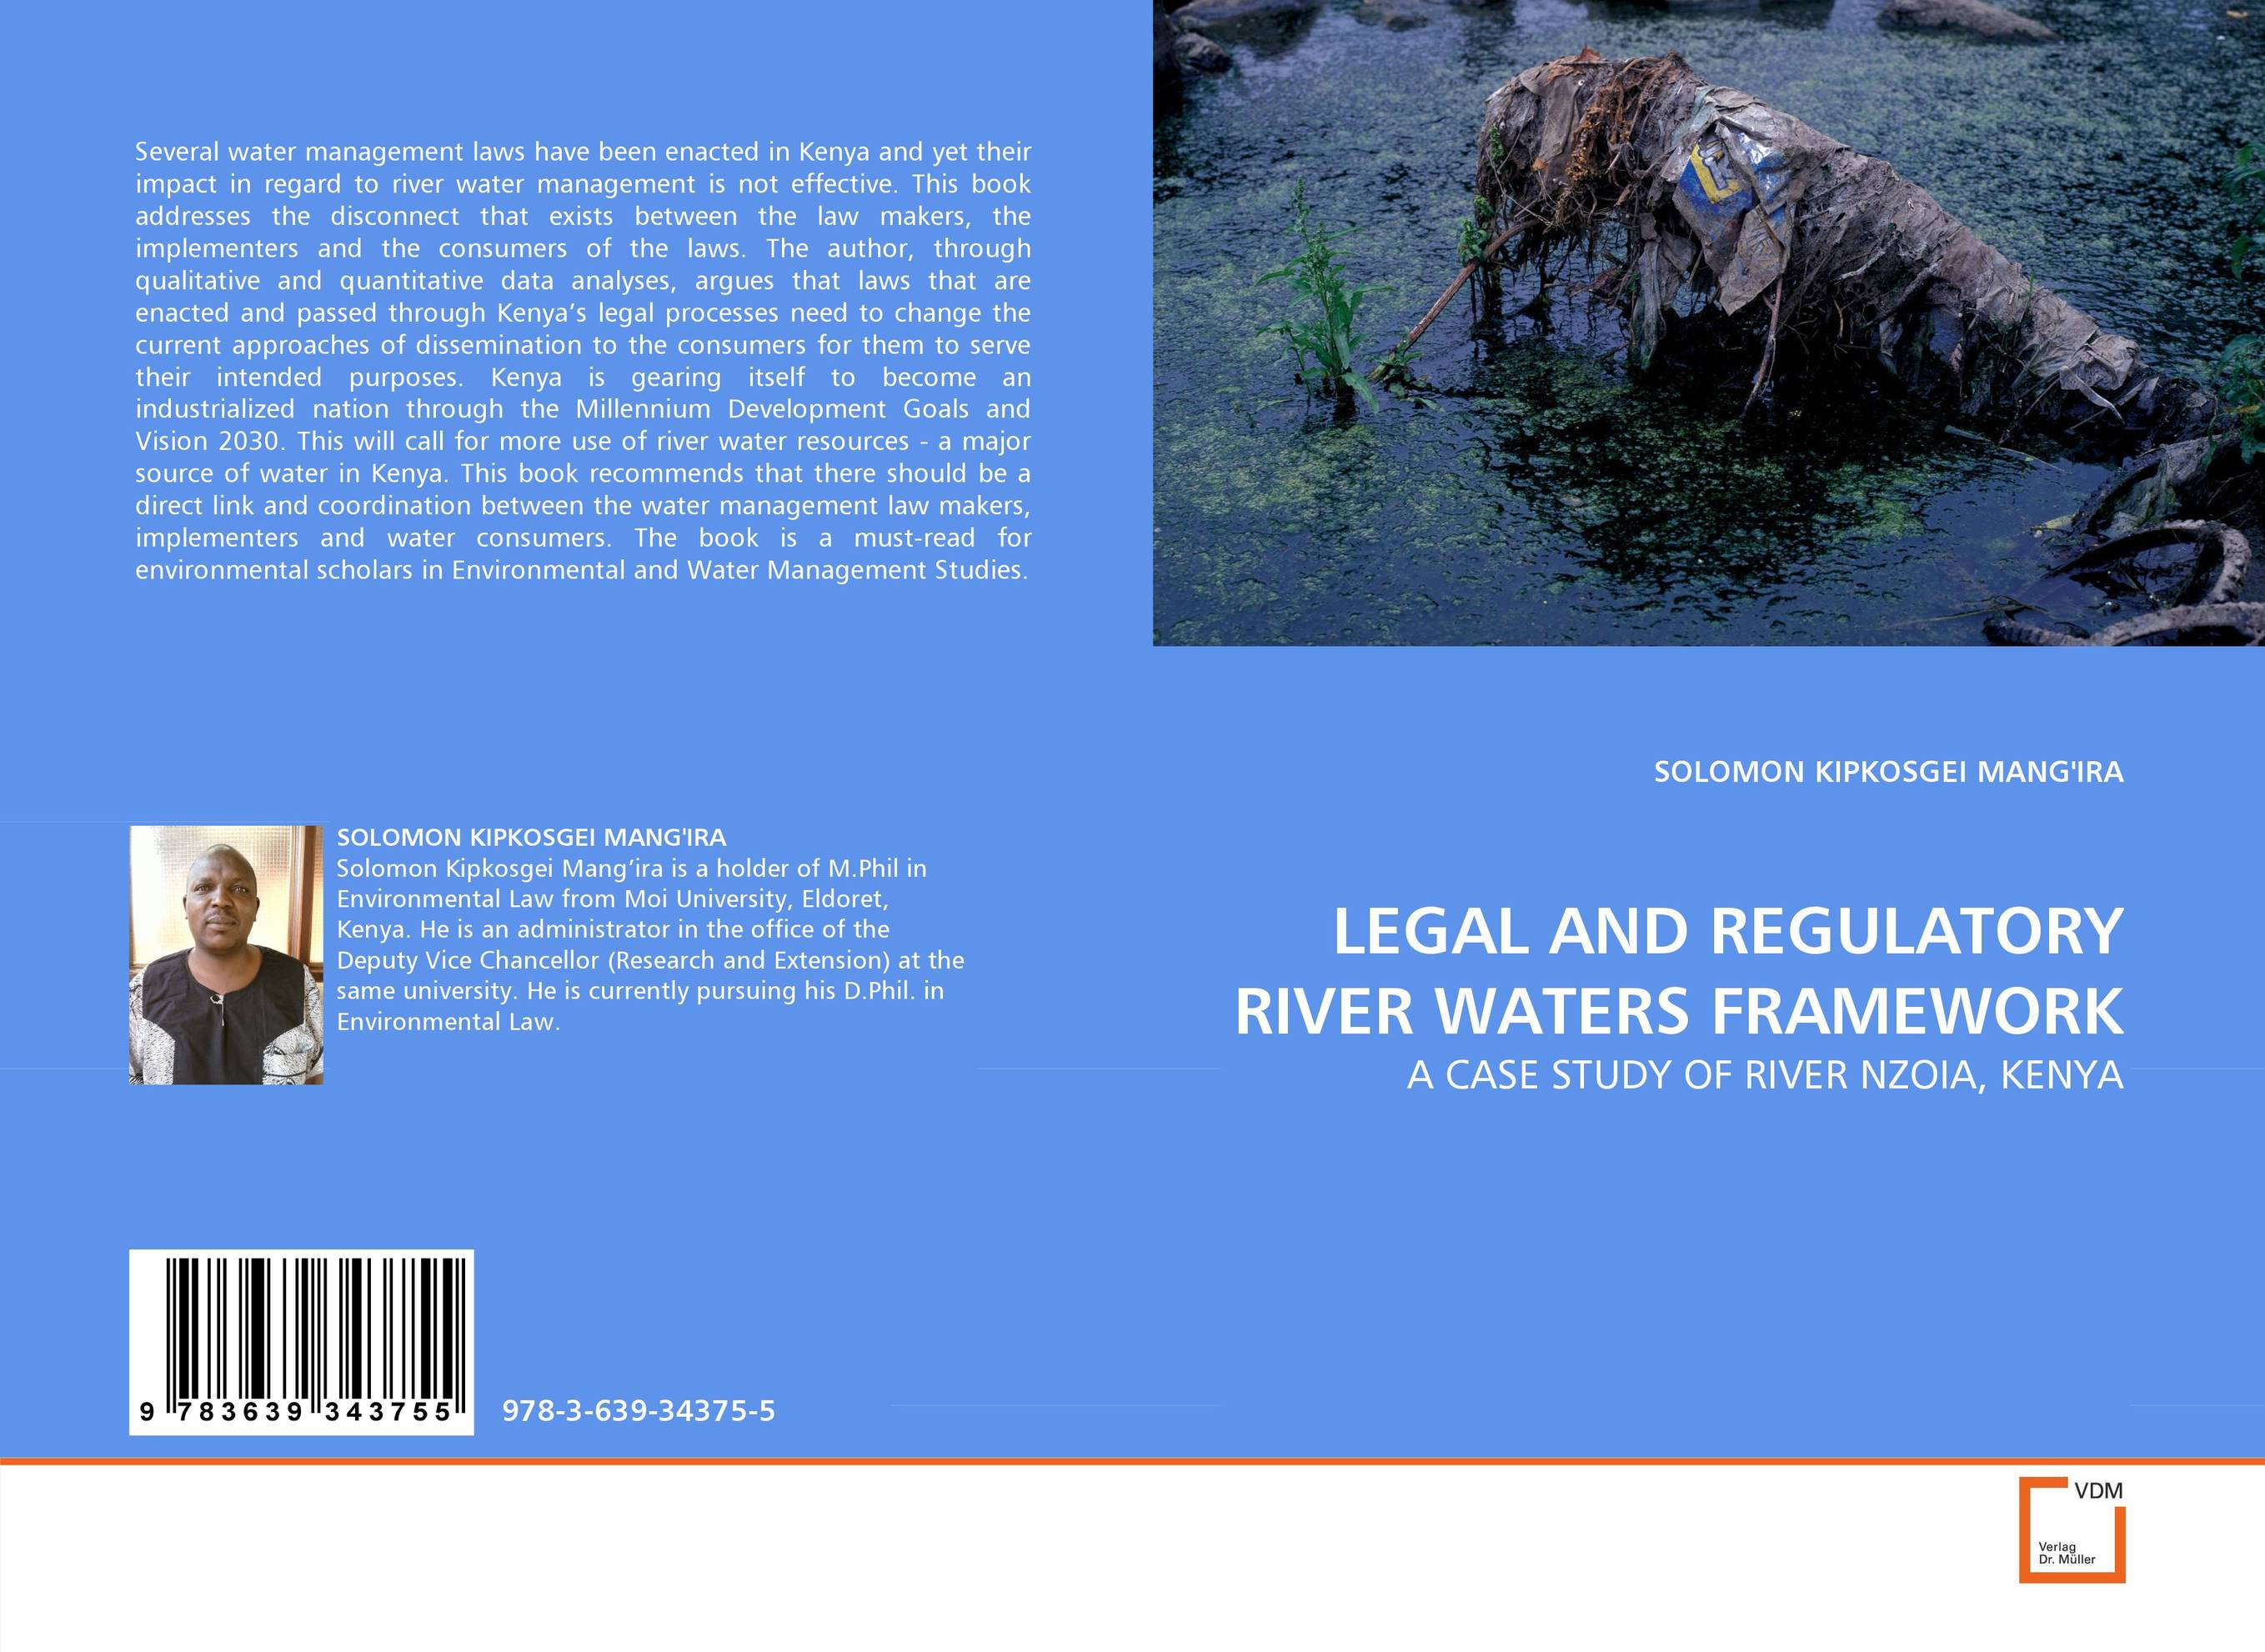 LEGAL AND REGULATORY RIVER WATERS FRAMEWORK